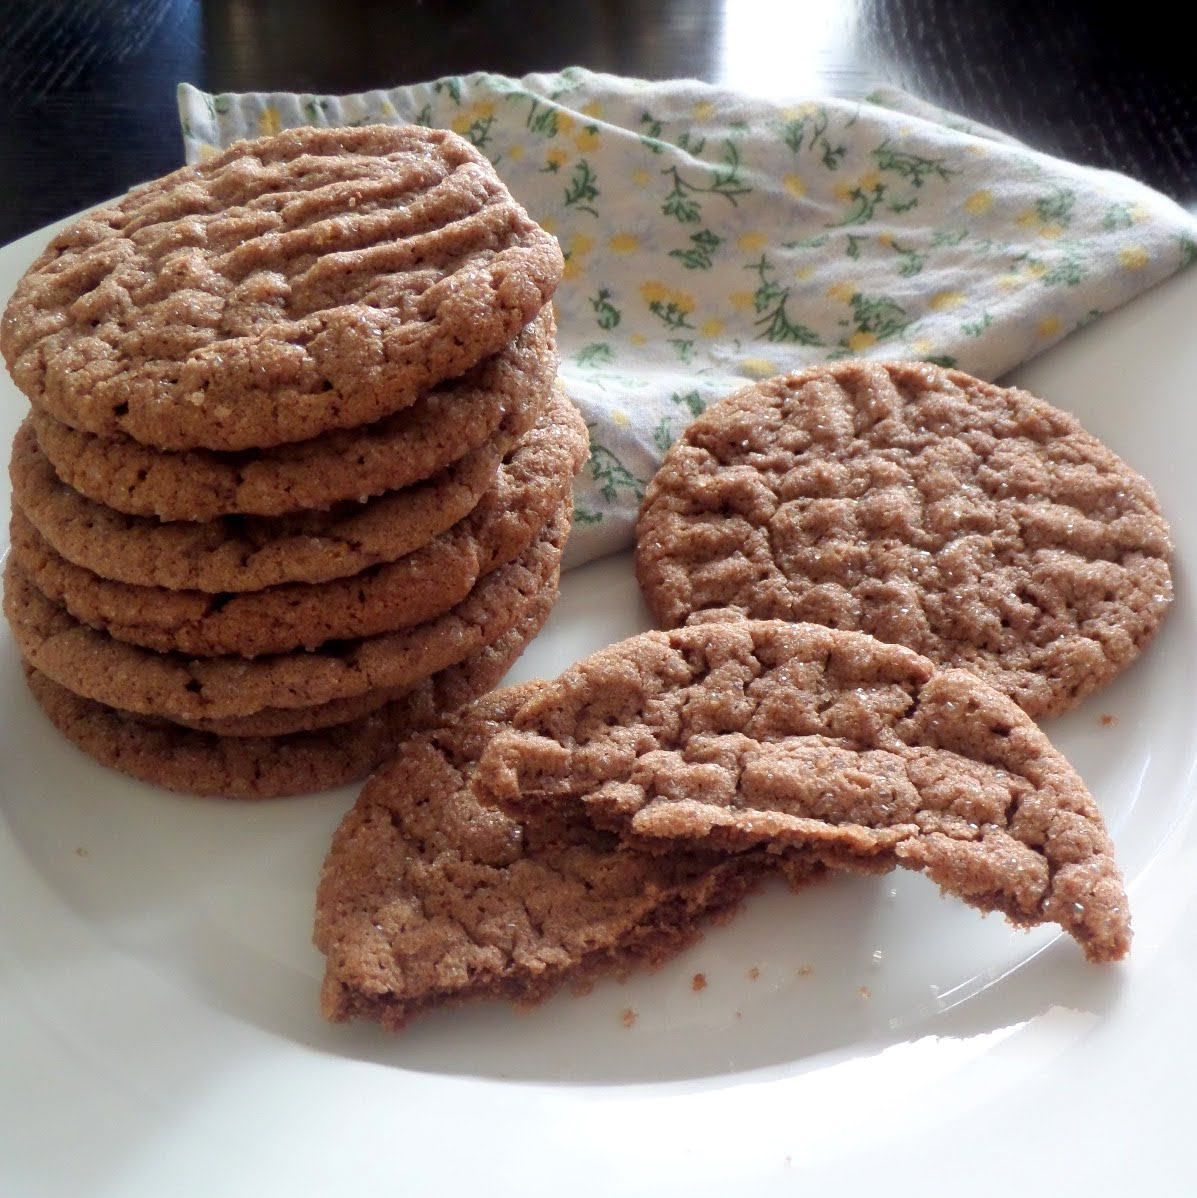 Nutella Cookies:  A traditional peanut butter cookie made non traditional by using Nutella instead of peanut butter.